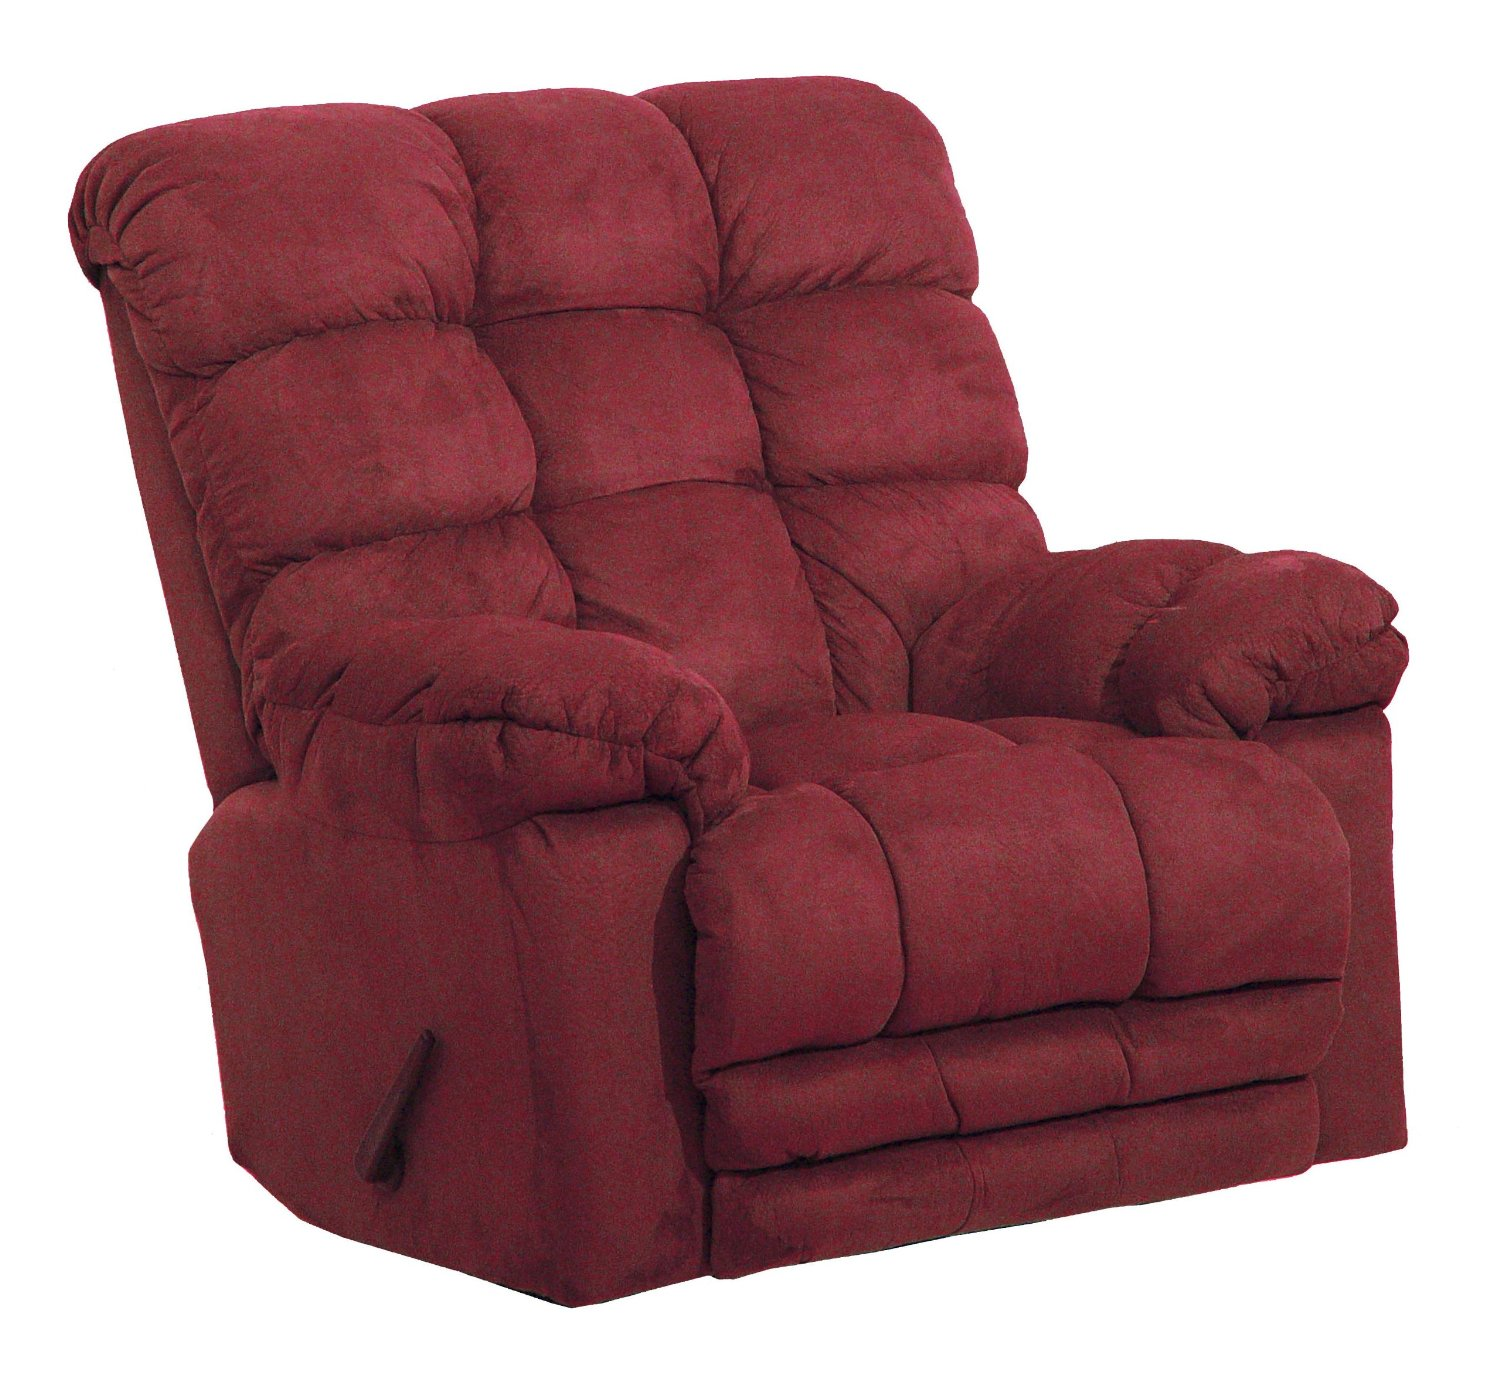 style size plus onestopplus anne queen chairs pin recliner extra wingback tall seating big large chair and tufted